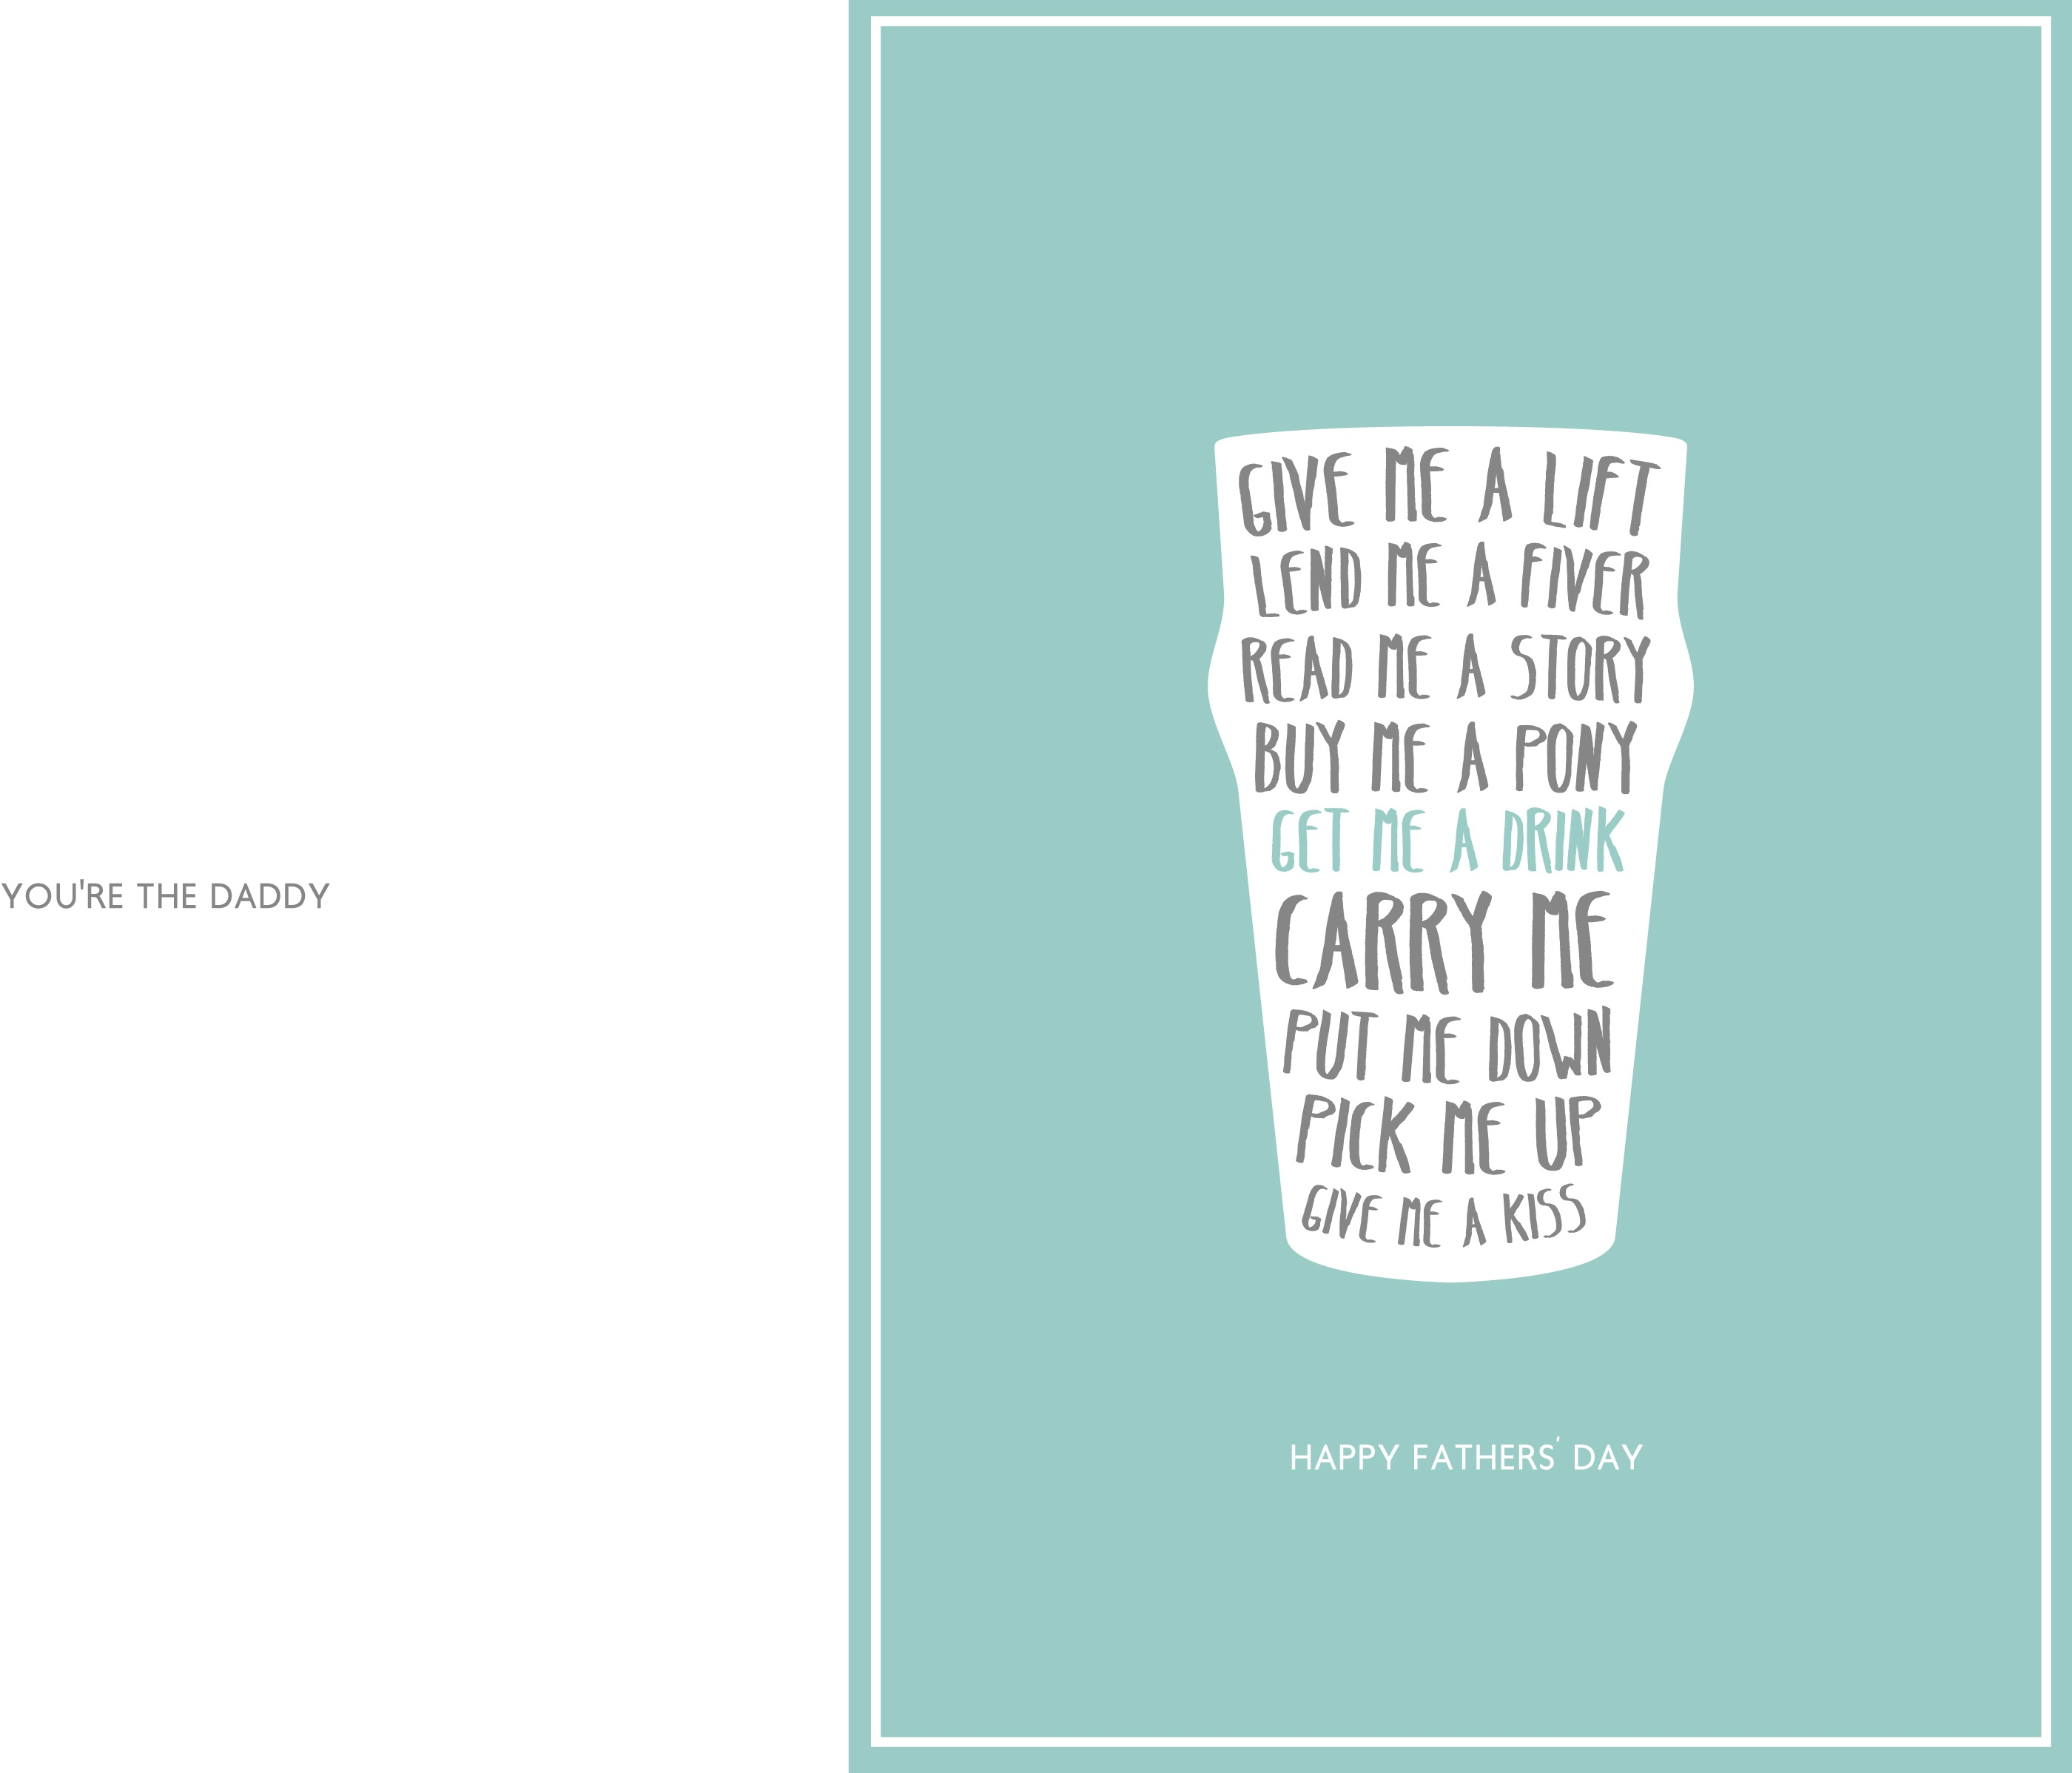 24 Free Printable Father's Day Cards | Kittybabylove - Free Printable Father's Day Card From Wife To Husband